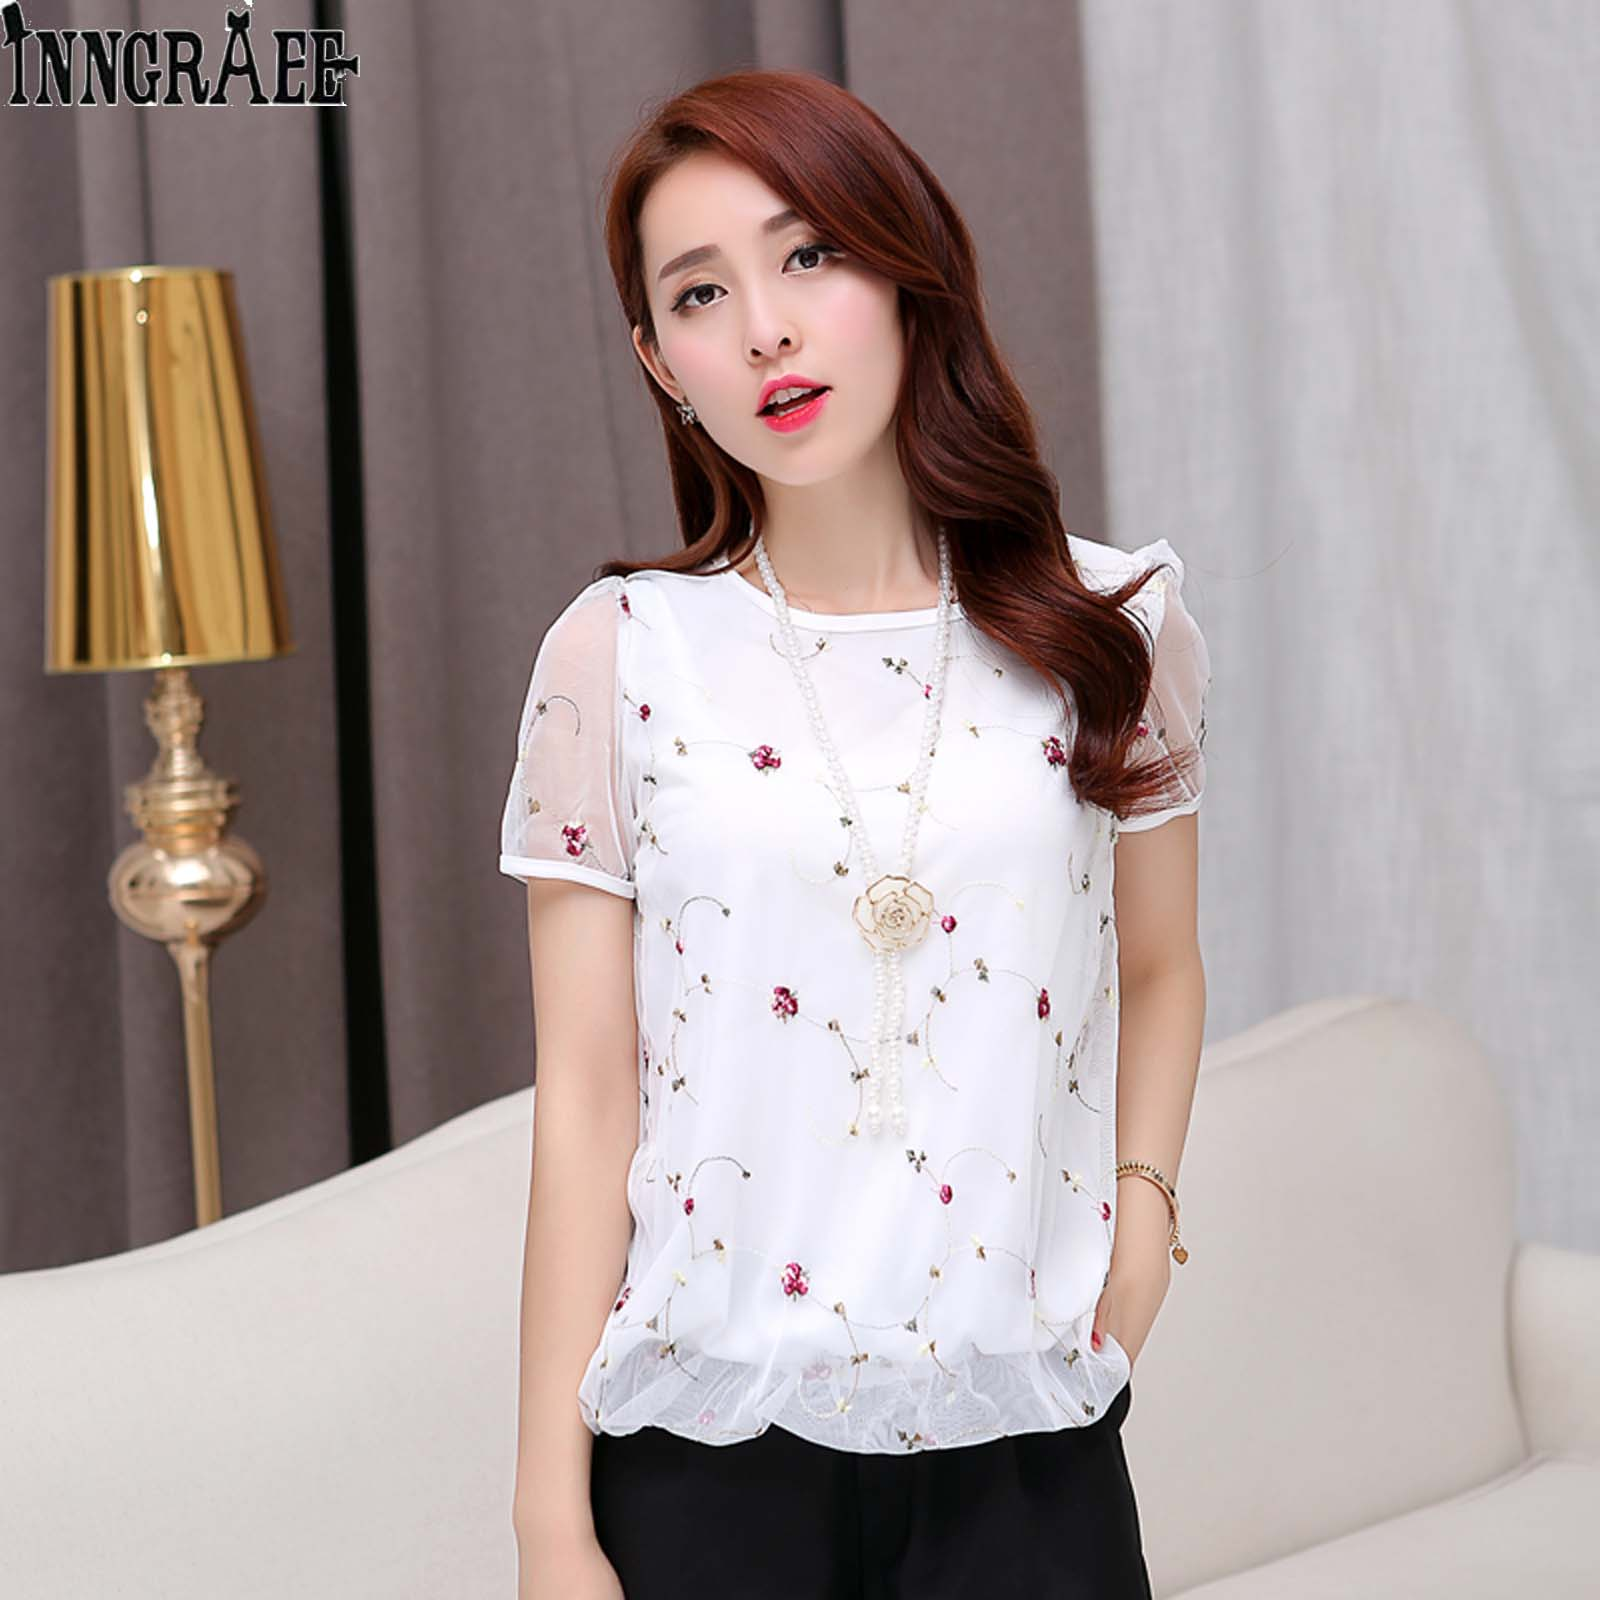 Back To Search Resultswomen's Clothing Summer Womens Chiffon Shirts Fashion New Short Sleeves Blouses Female Gauze Splicing Sweet Print Shirts Blouses Elegant Tops